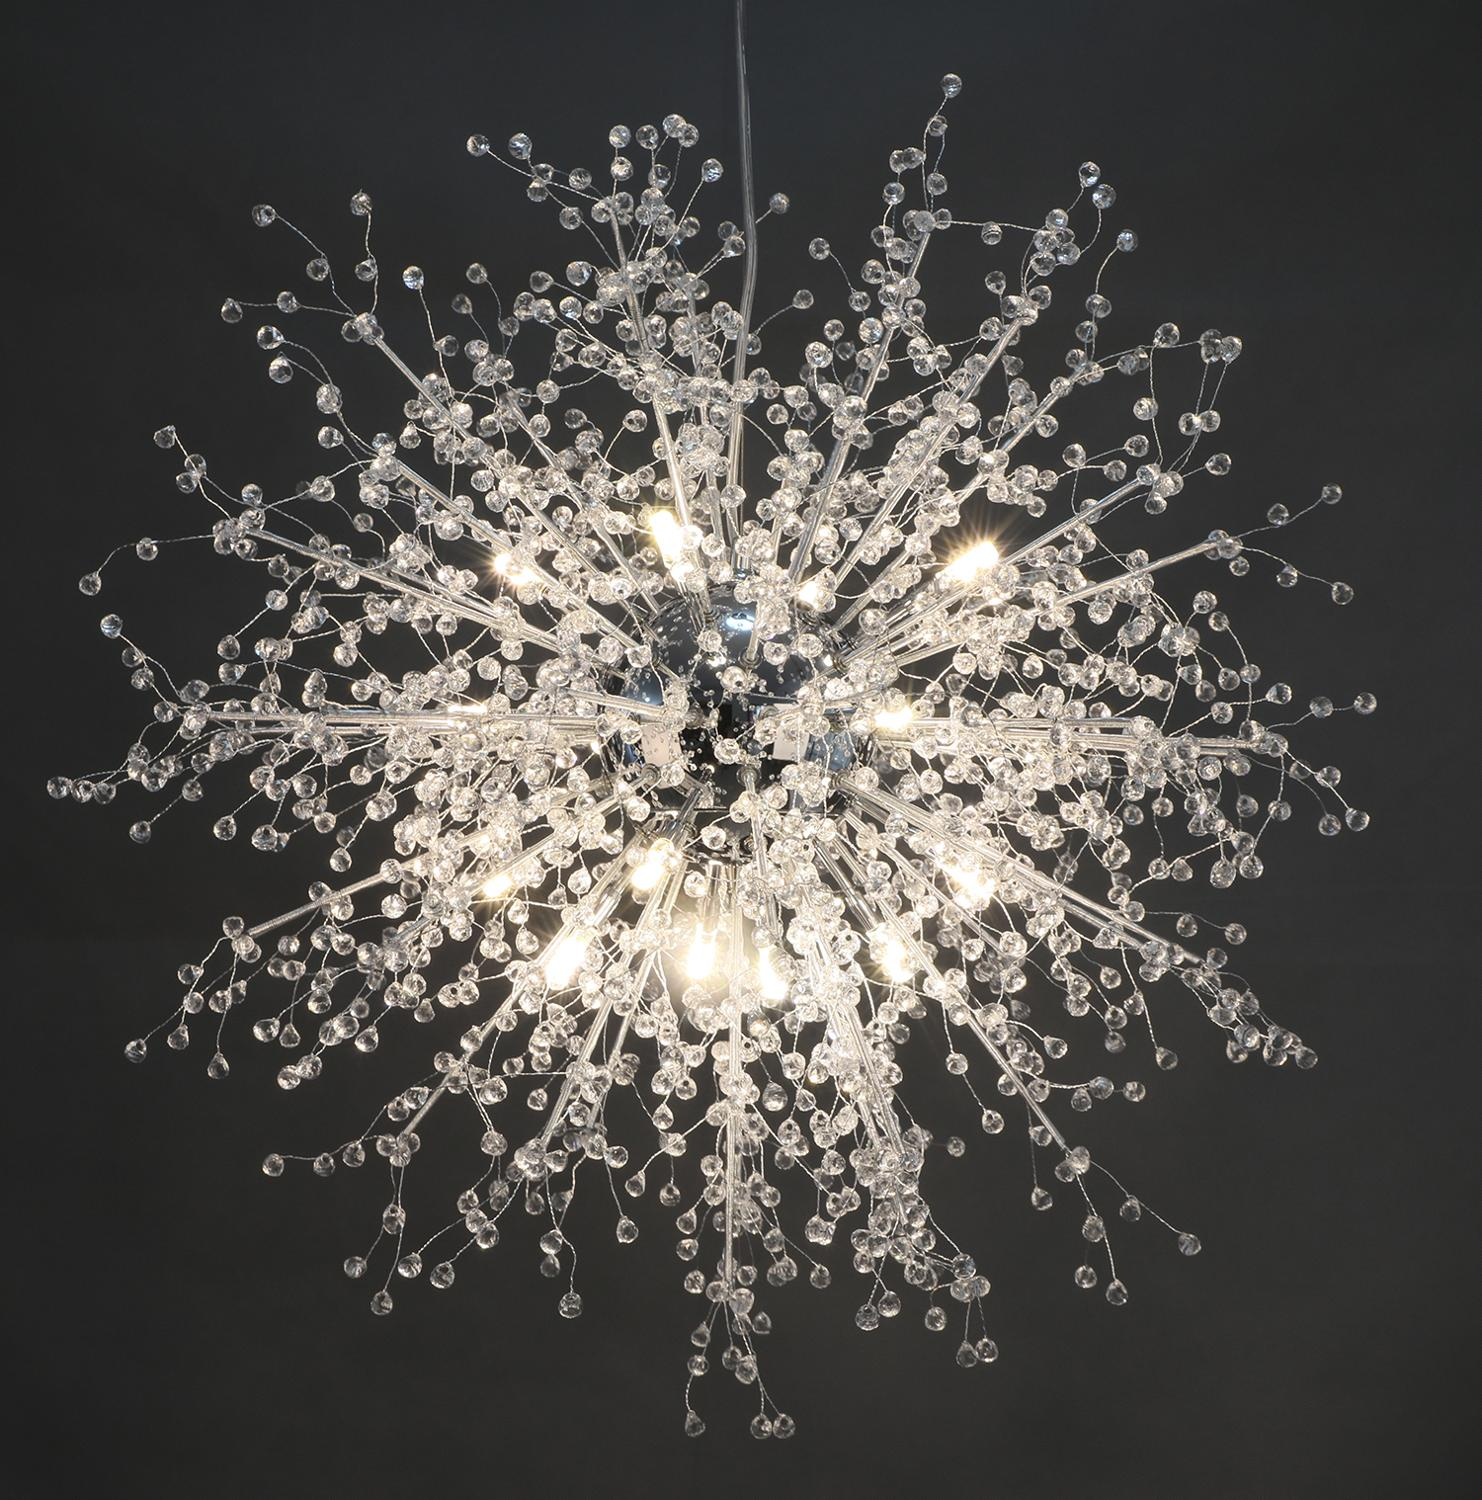 GDNS Chandeliers Firework LED Light Stainless Steel Crystal Chandelier Lighting Globe Living Room Bedroom Restaurant Dining Room